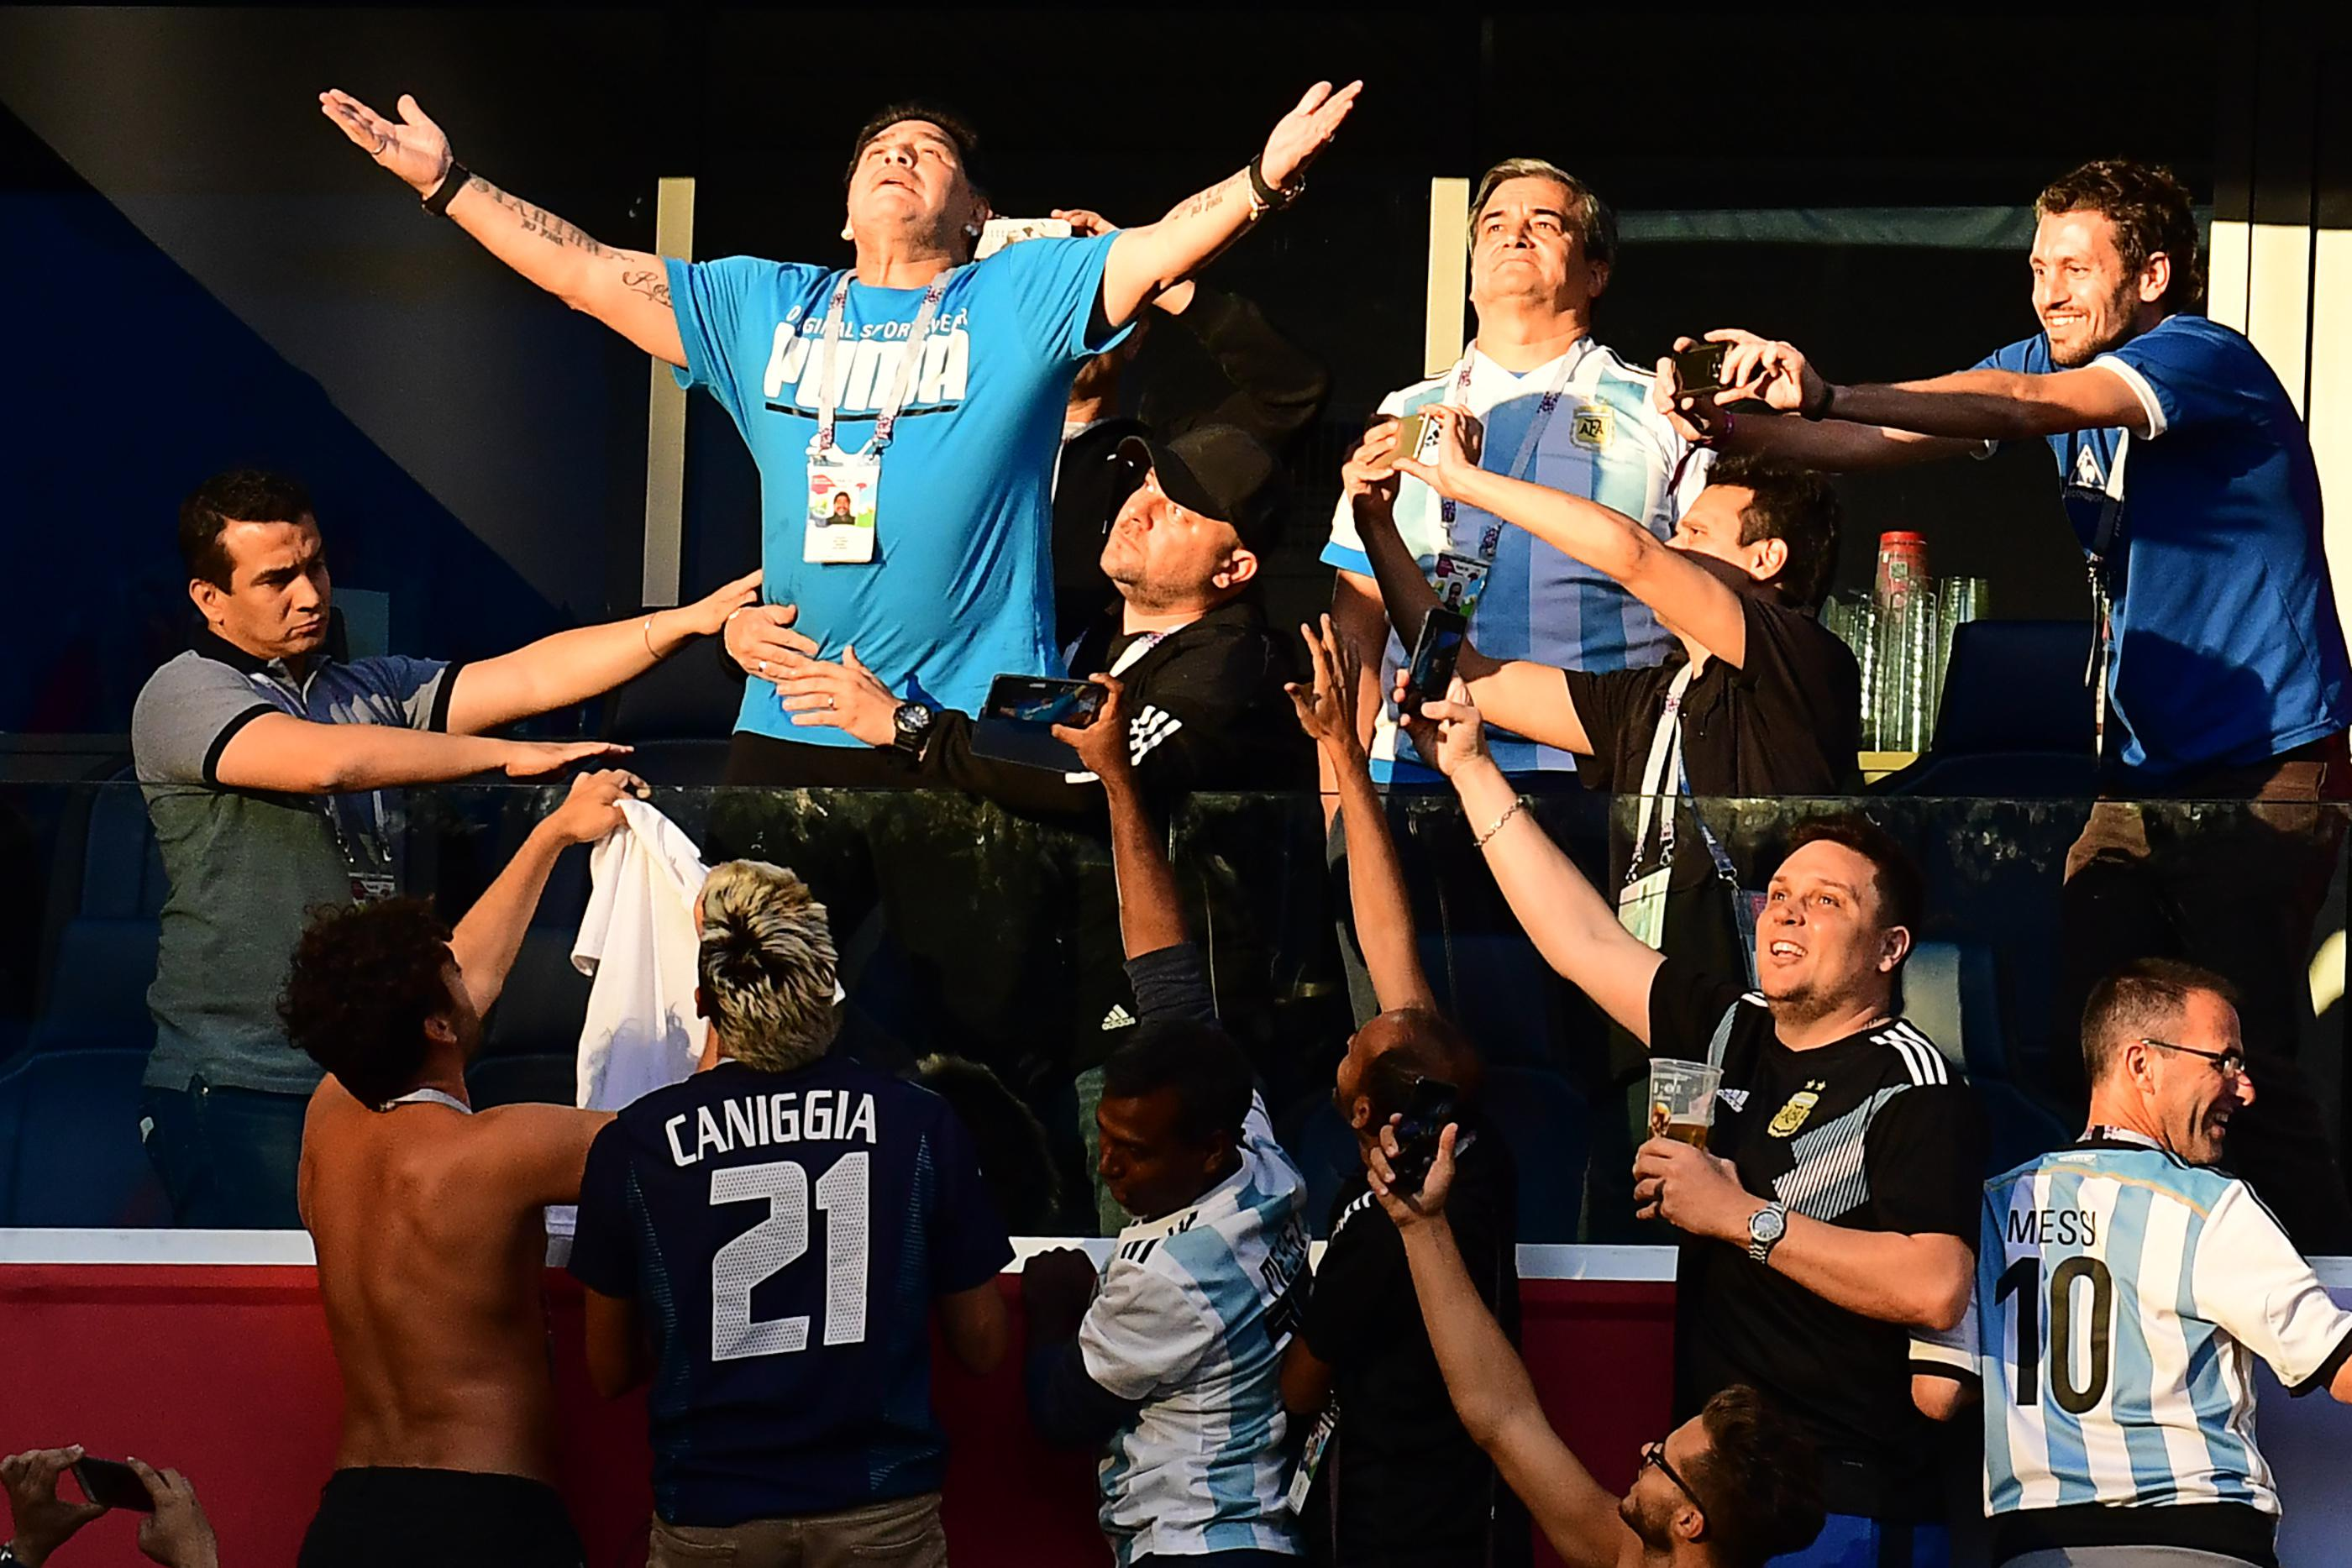 Retired Argentina forward Diego Maradona (2nd-L) poses ahead of the Russia 2018 World Cup Group D football match between Nigeria and Argentina at the Saint Petersburg Stadium in Saint Petersburg on June 26, 2018. - Maradona won the World Cup with Argentina in 1986. (Photo by Giuseppe CACACE / AFP) / RESTRICTED TO EDITORIAL USE - NO MOBILE PUSH ALERTS/DOWNLOADS        (Photo credit should read GIUSEPPE CACACE/AFP/Getty Images)